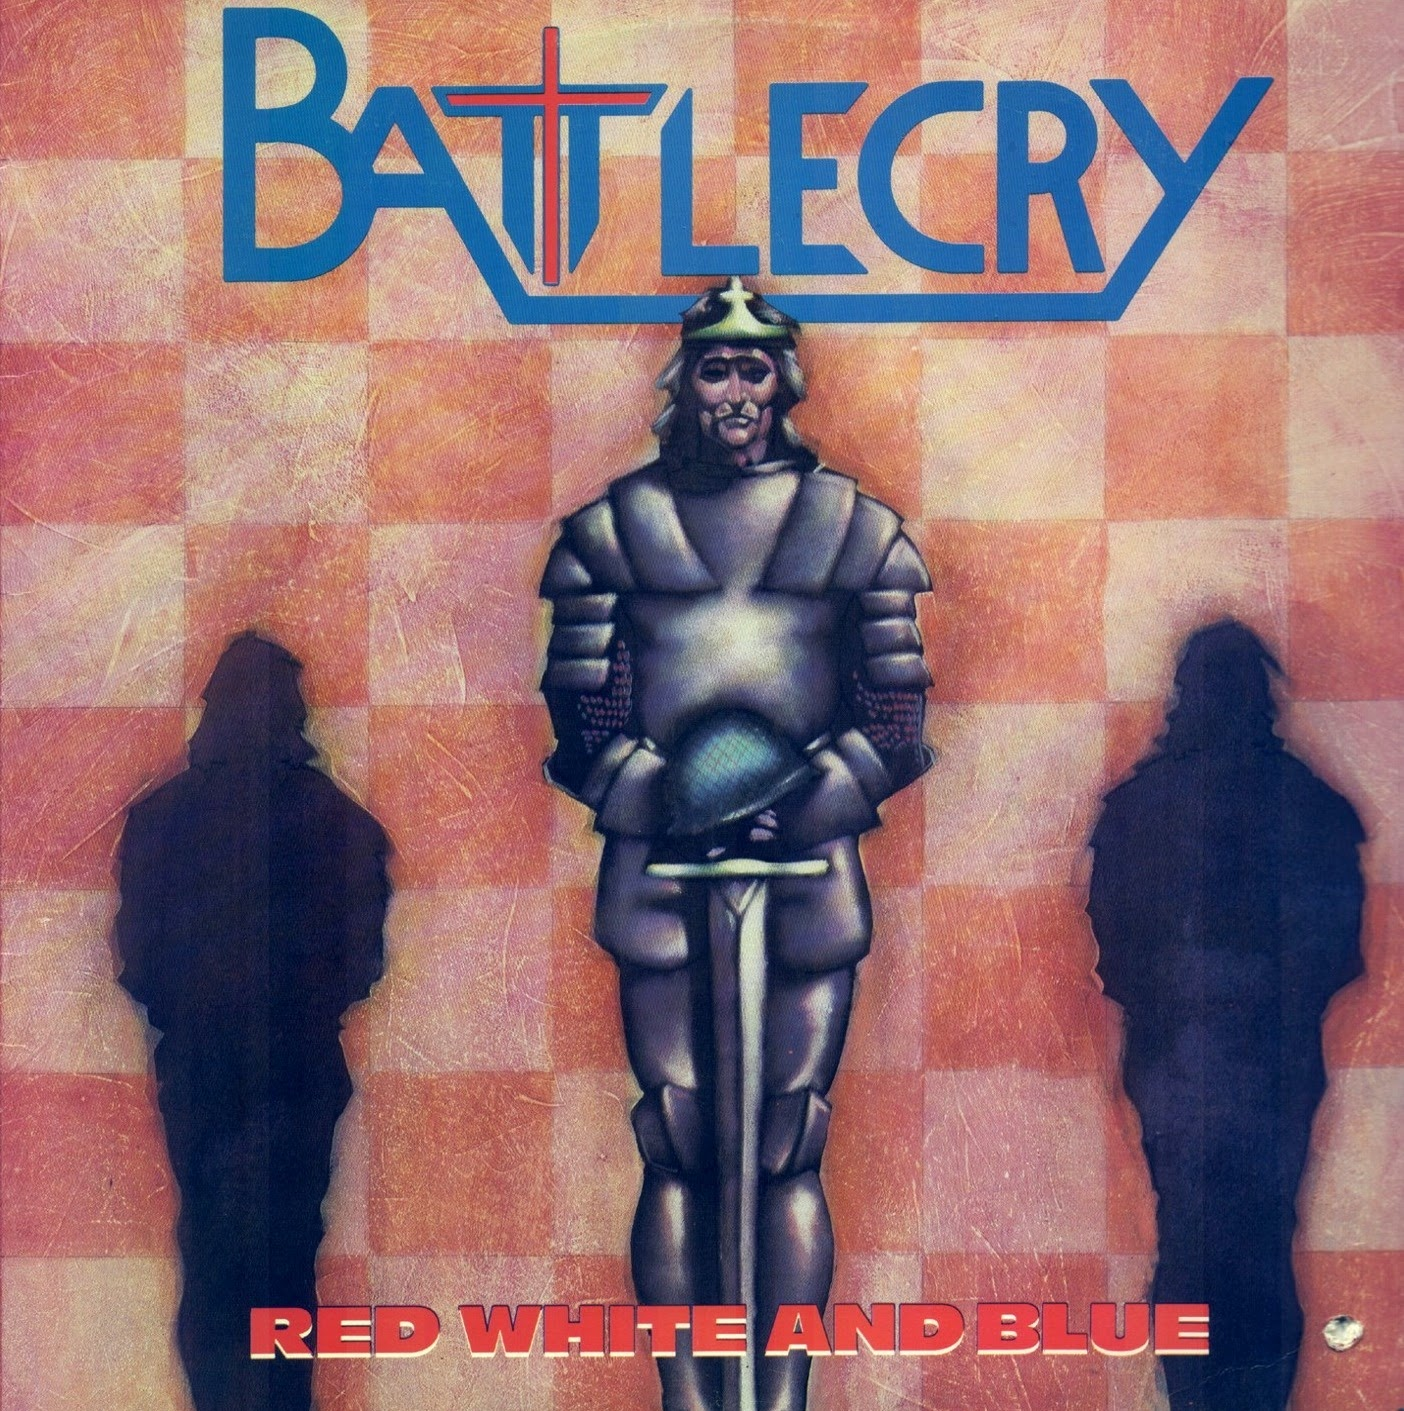 Battlecry Red white and blue 1985